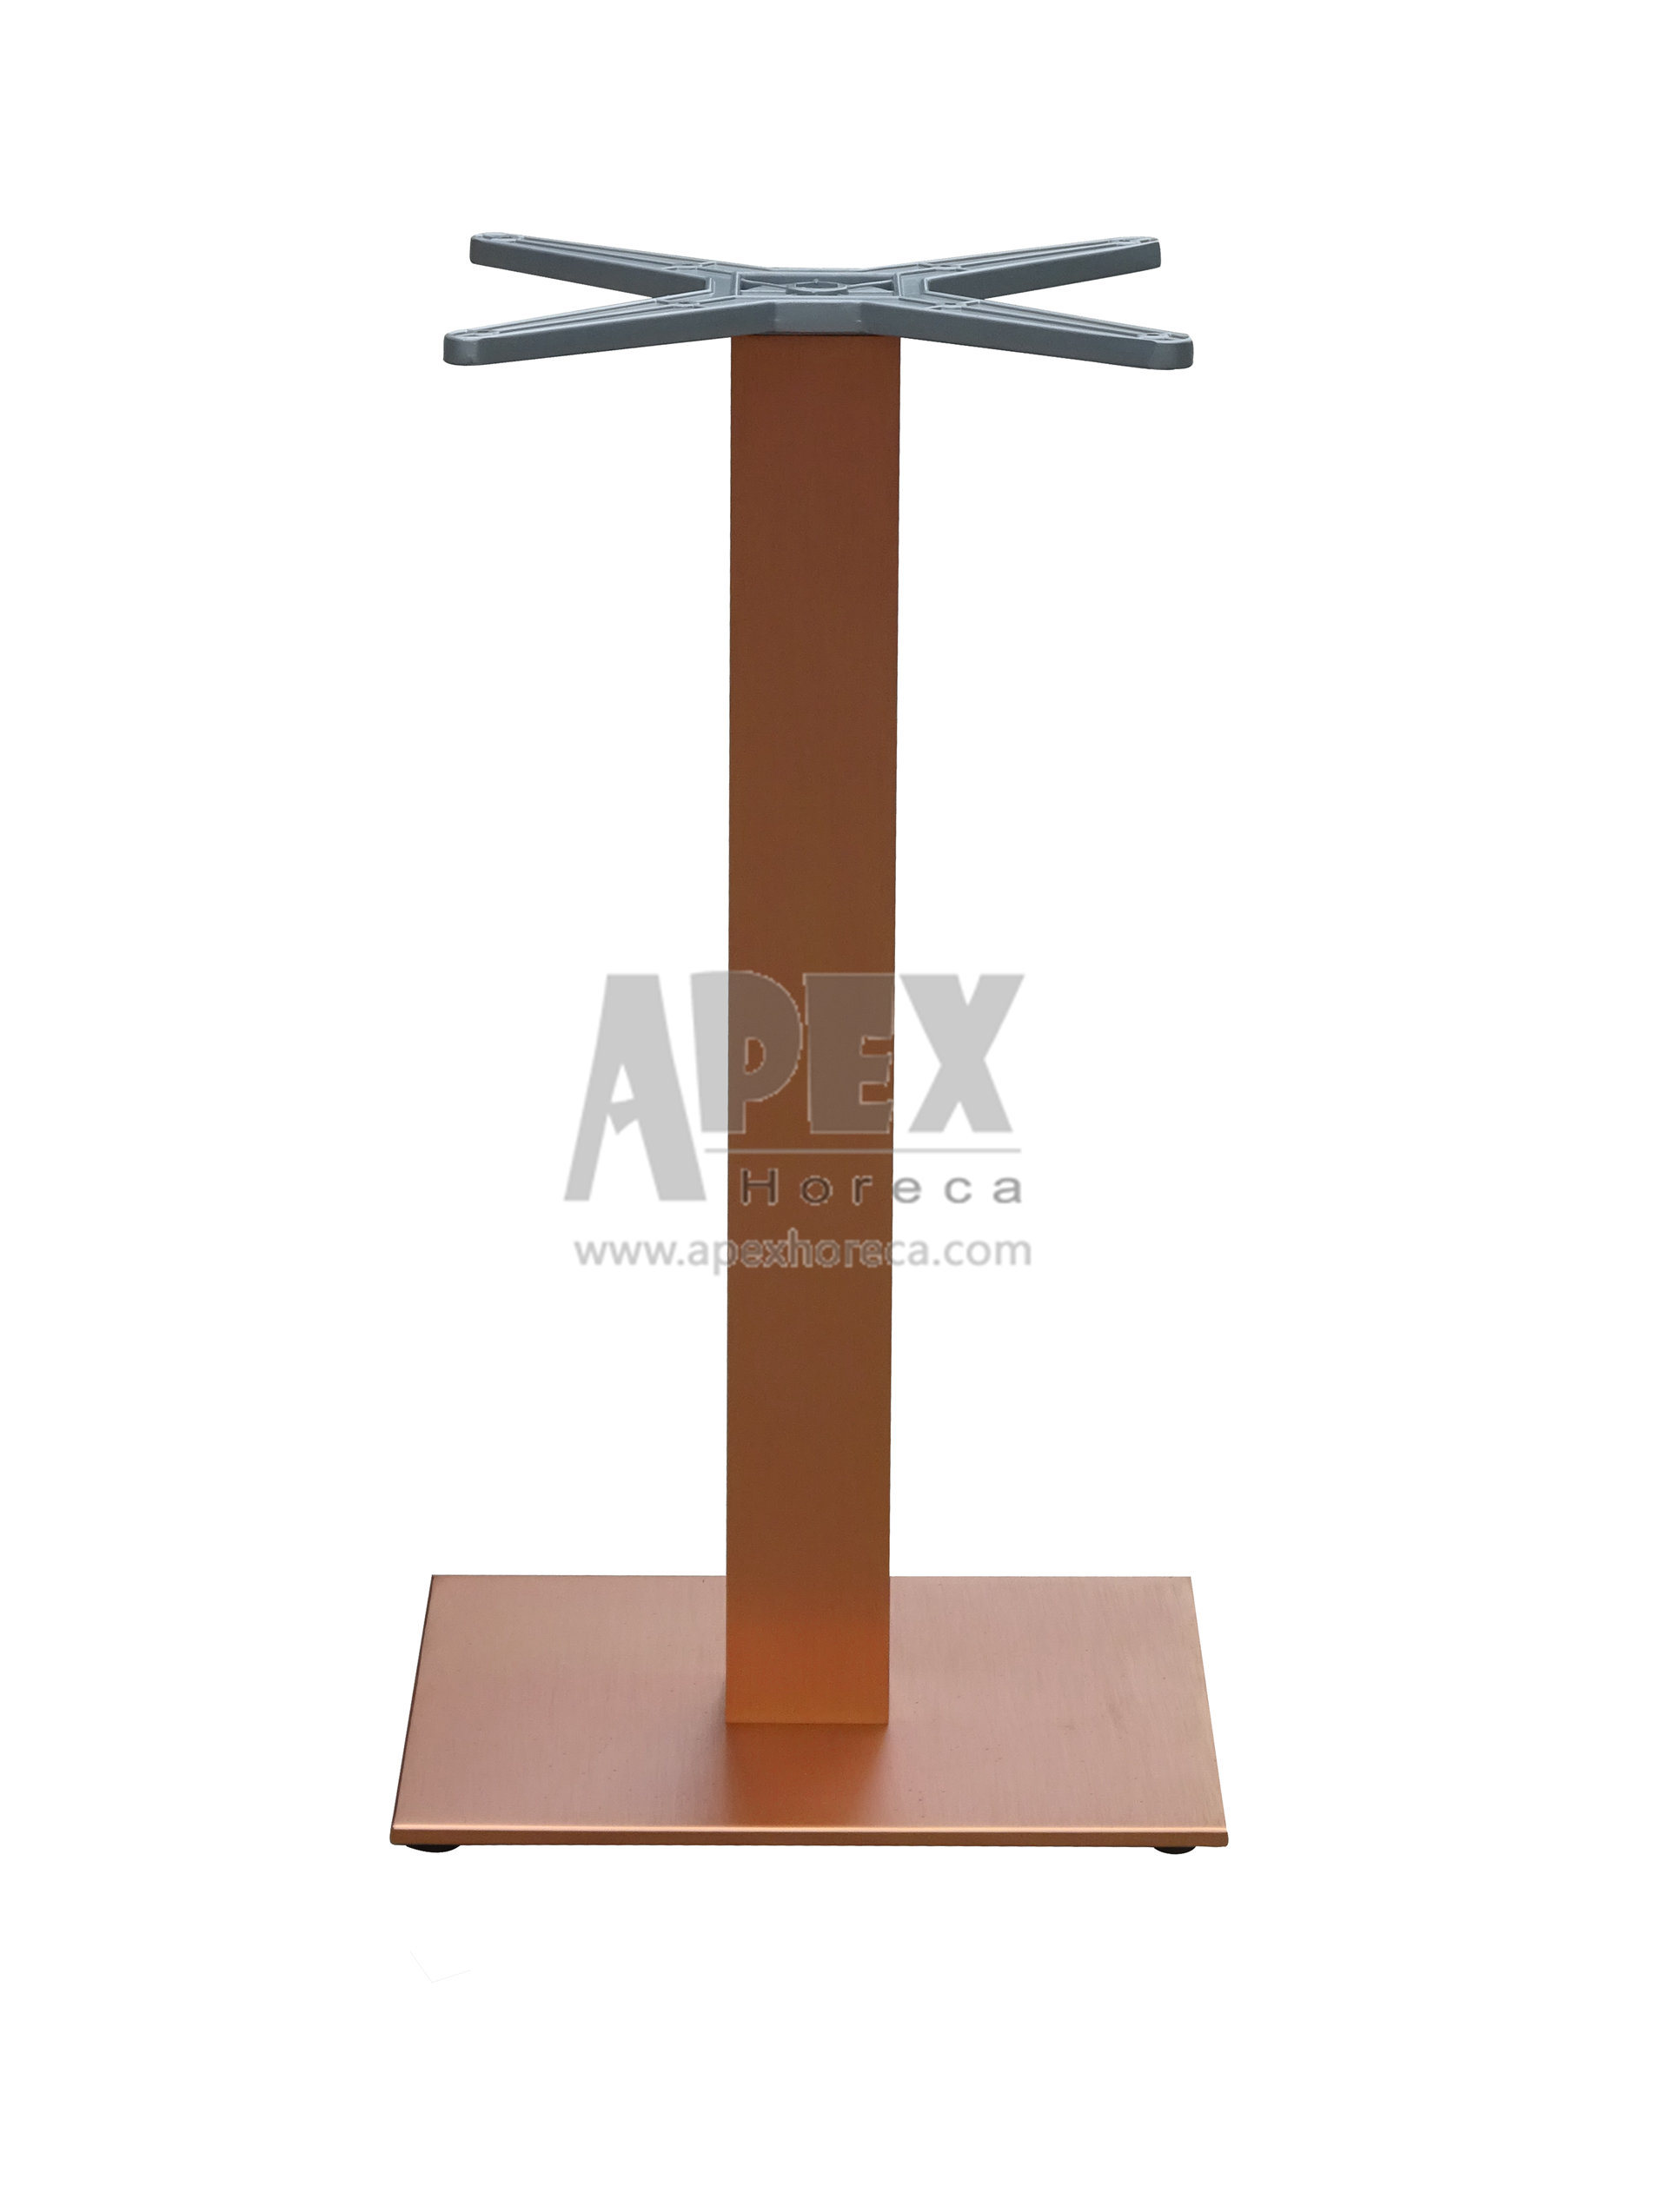 Aluminum Table Base Stainless Steel Look Table Base